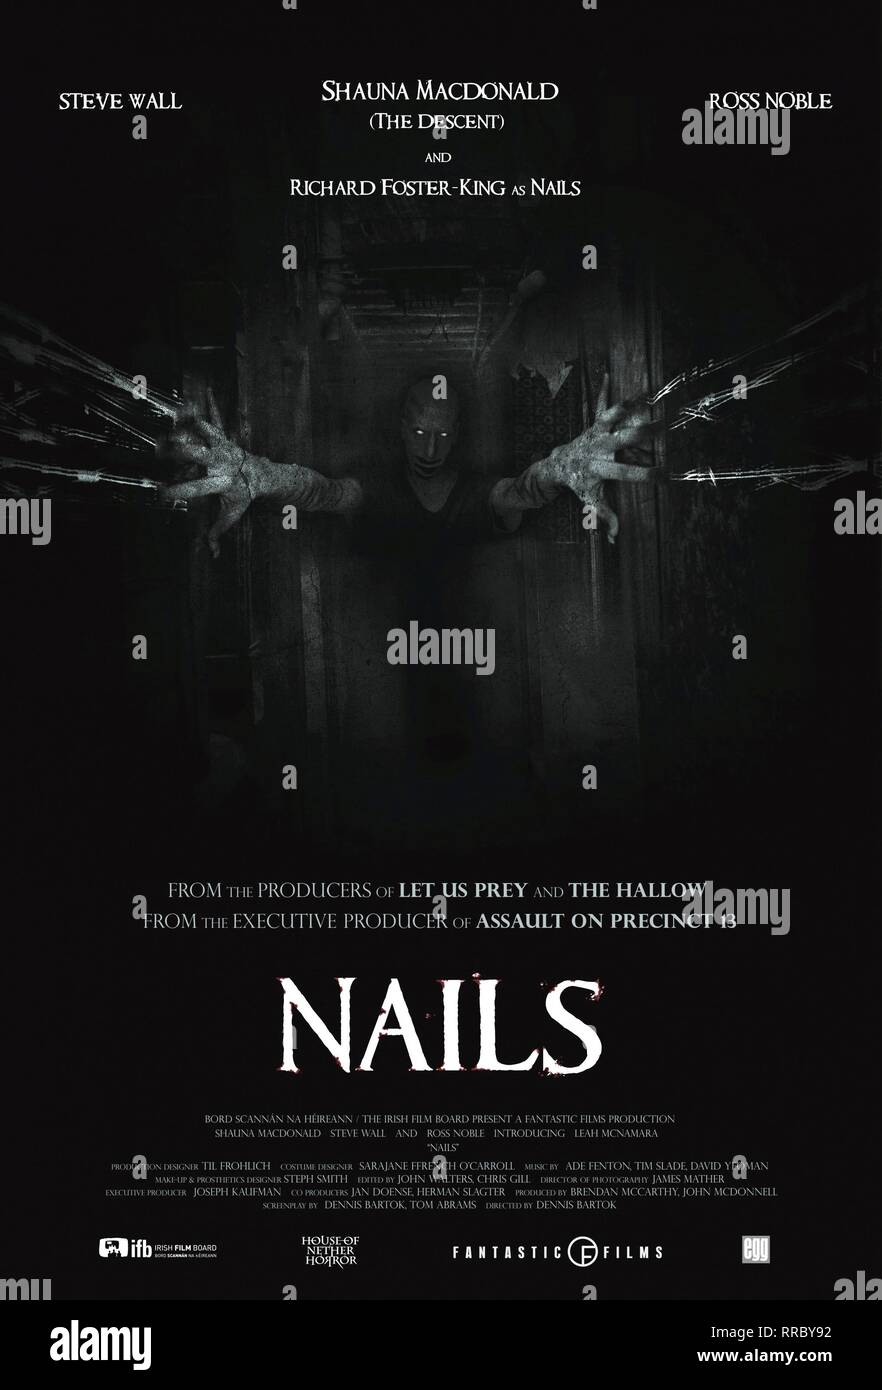 NAILS, MOVIE POSTER, 2017 - Stock Image